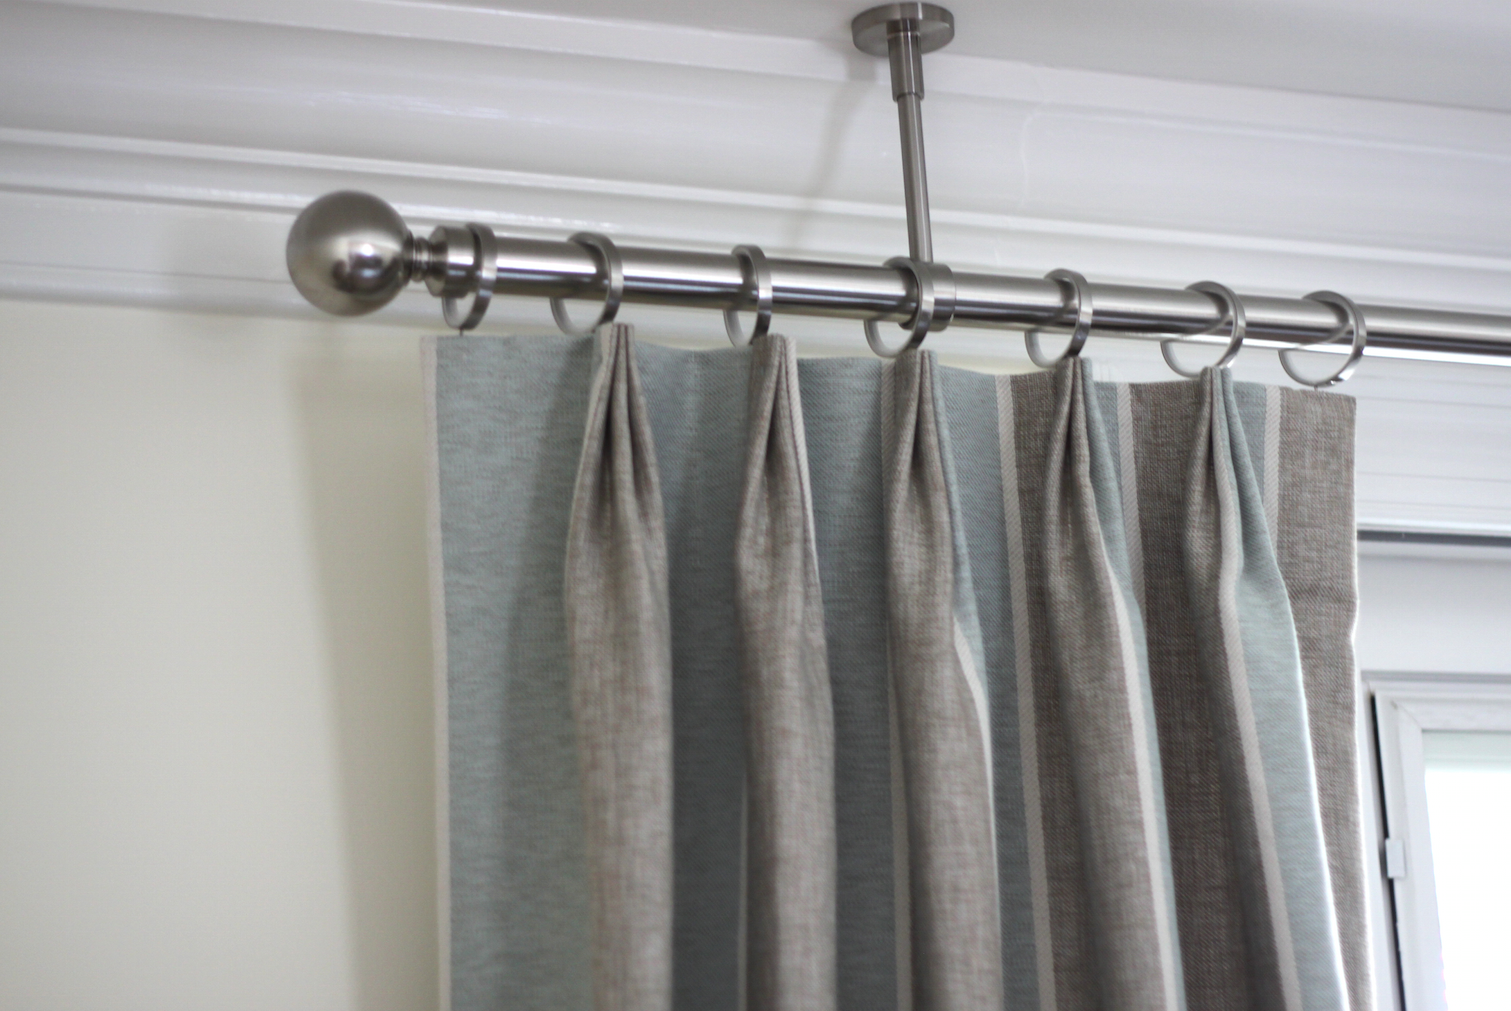 Ceiling mount curtain rod hangers curtains curtains from for Hardware for hanging curtains